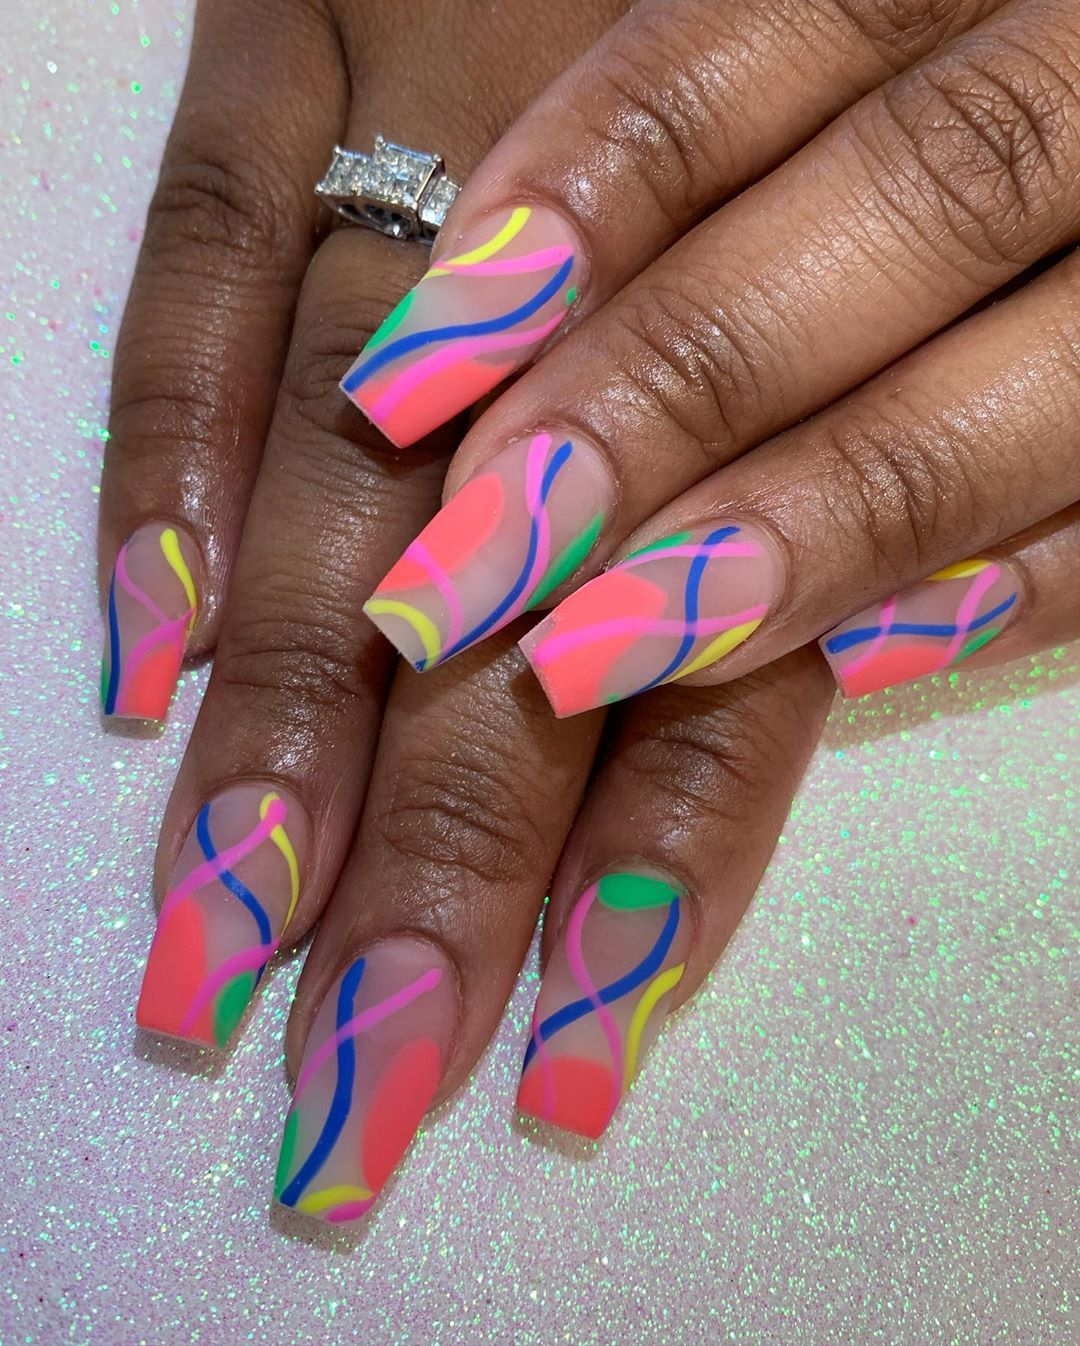 "Toya P ♓️ on Instagram: ""𝓒𝓸𝓵𝓸𝓻 𝓢𝓽𝓻𝓲𝓷𝓰𝓼.....💕 #757 #757nails #757nailtech #757nailartist #757nailart #nails #nailart #nailswag #nailporn #nailartist #nailtech #dmv…"""